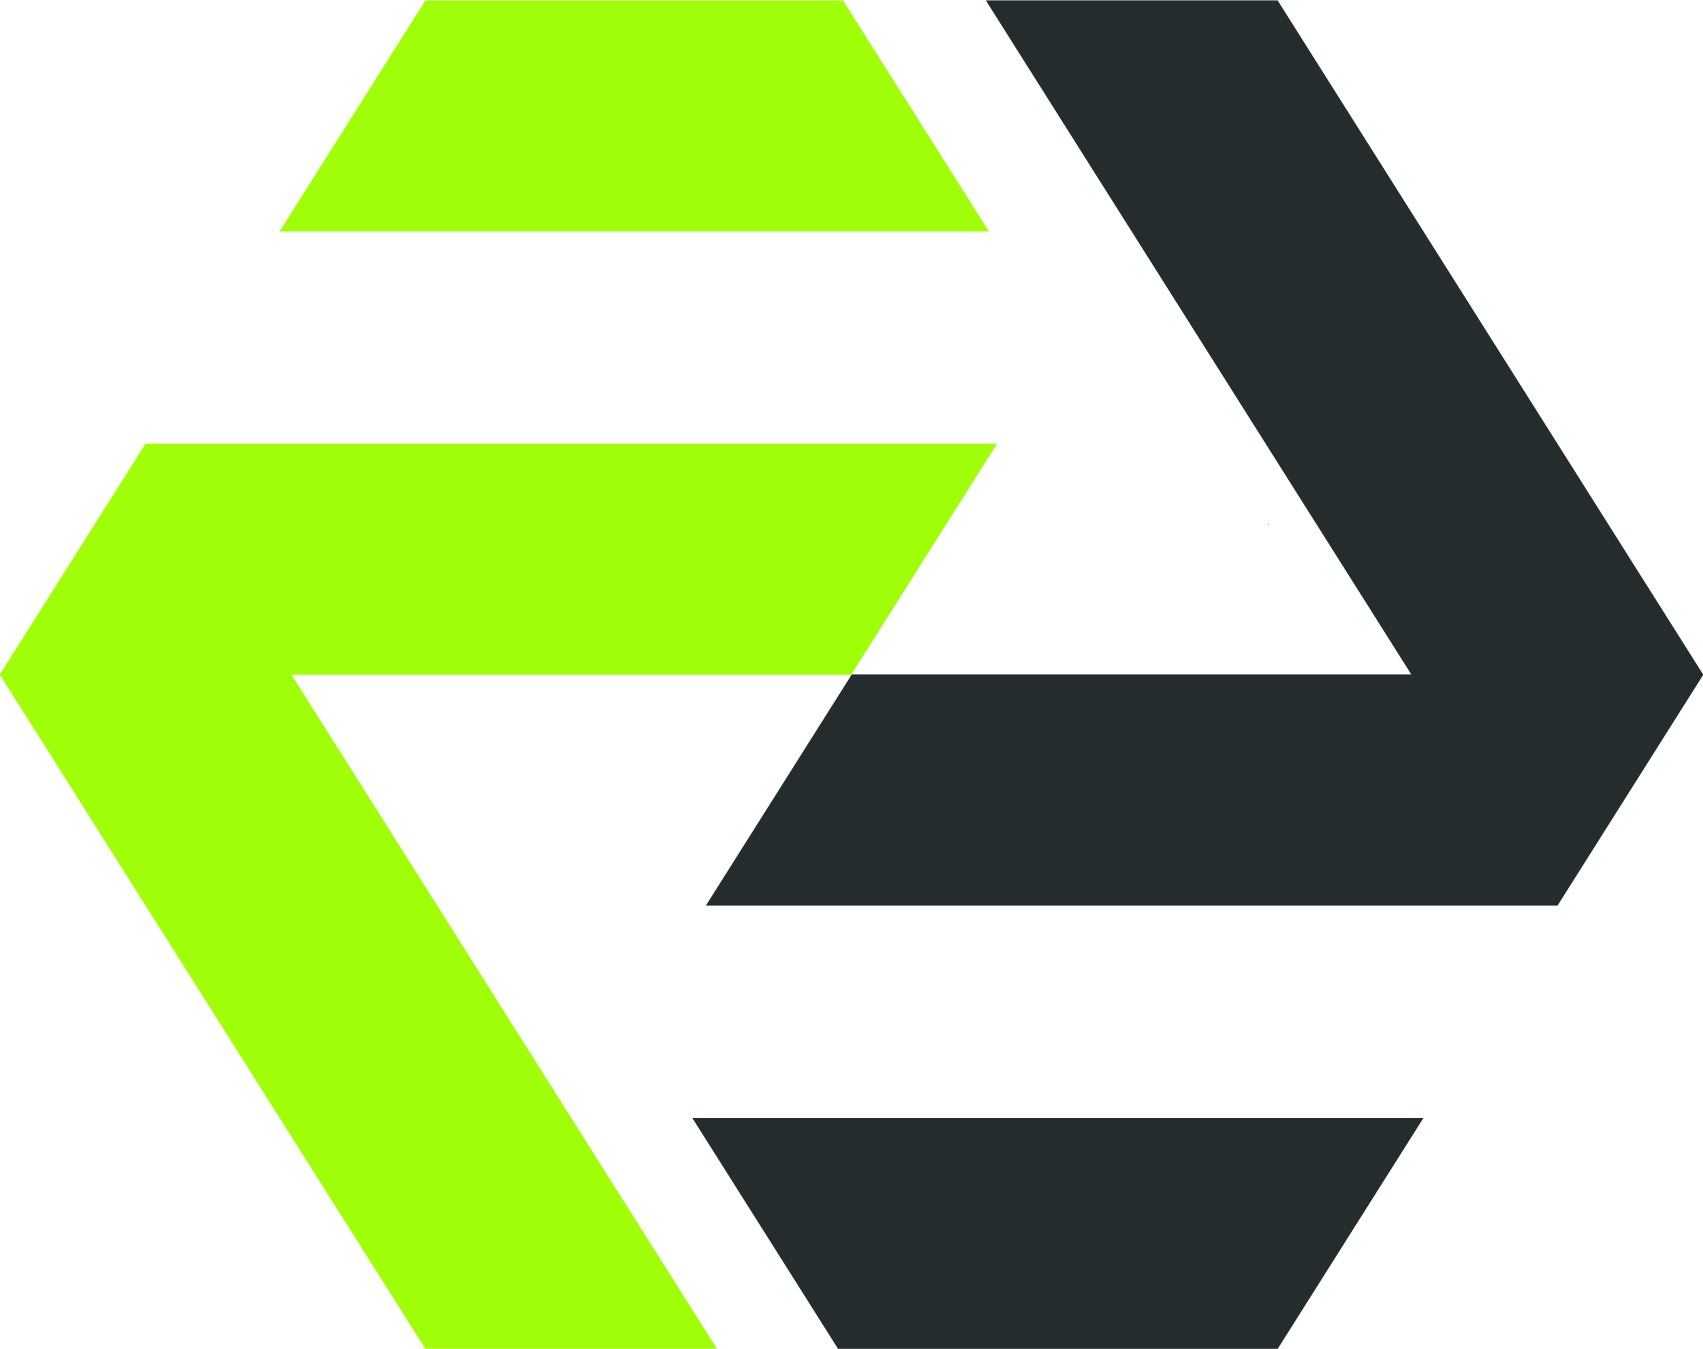 Organization changing lives needs a logo that stands out! Make it easy to recognize our brand!